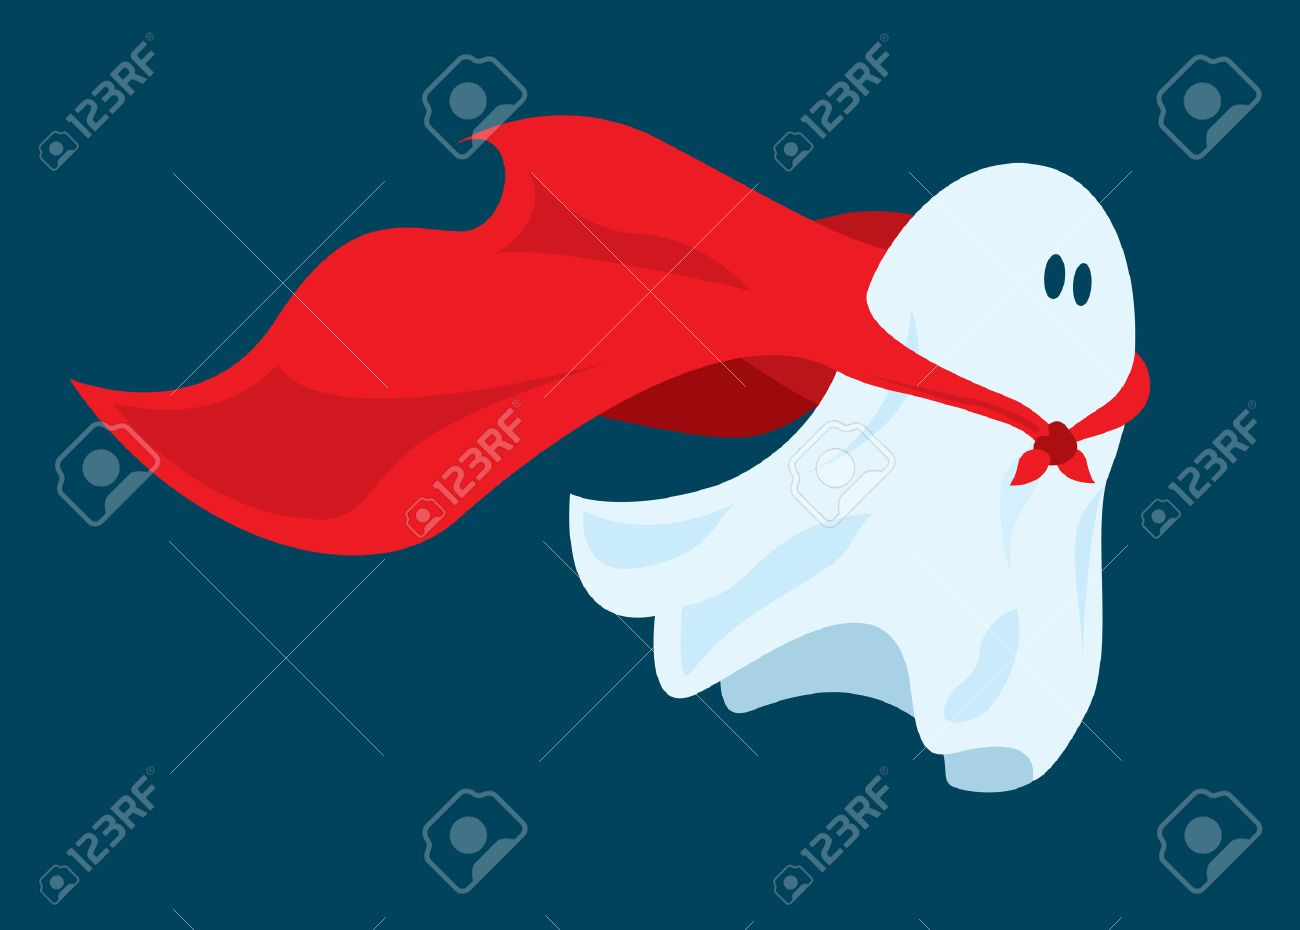 Cartoon illustration of funny super hero ghost flying with costume cape Stock Vector - 51818534 & Cartoon Illustration Of Funny Super Hero Ghost Flying With Costume ...